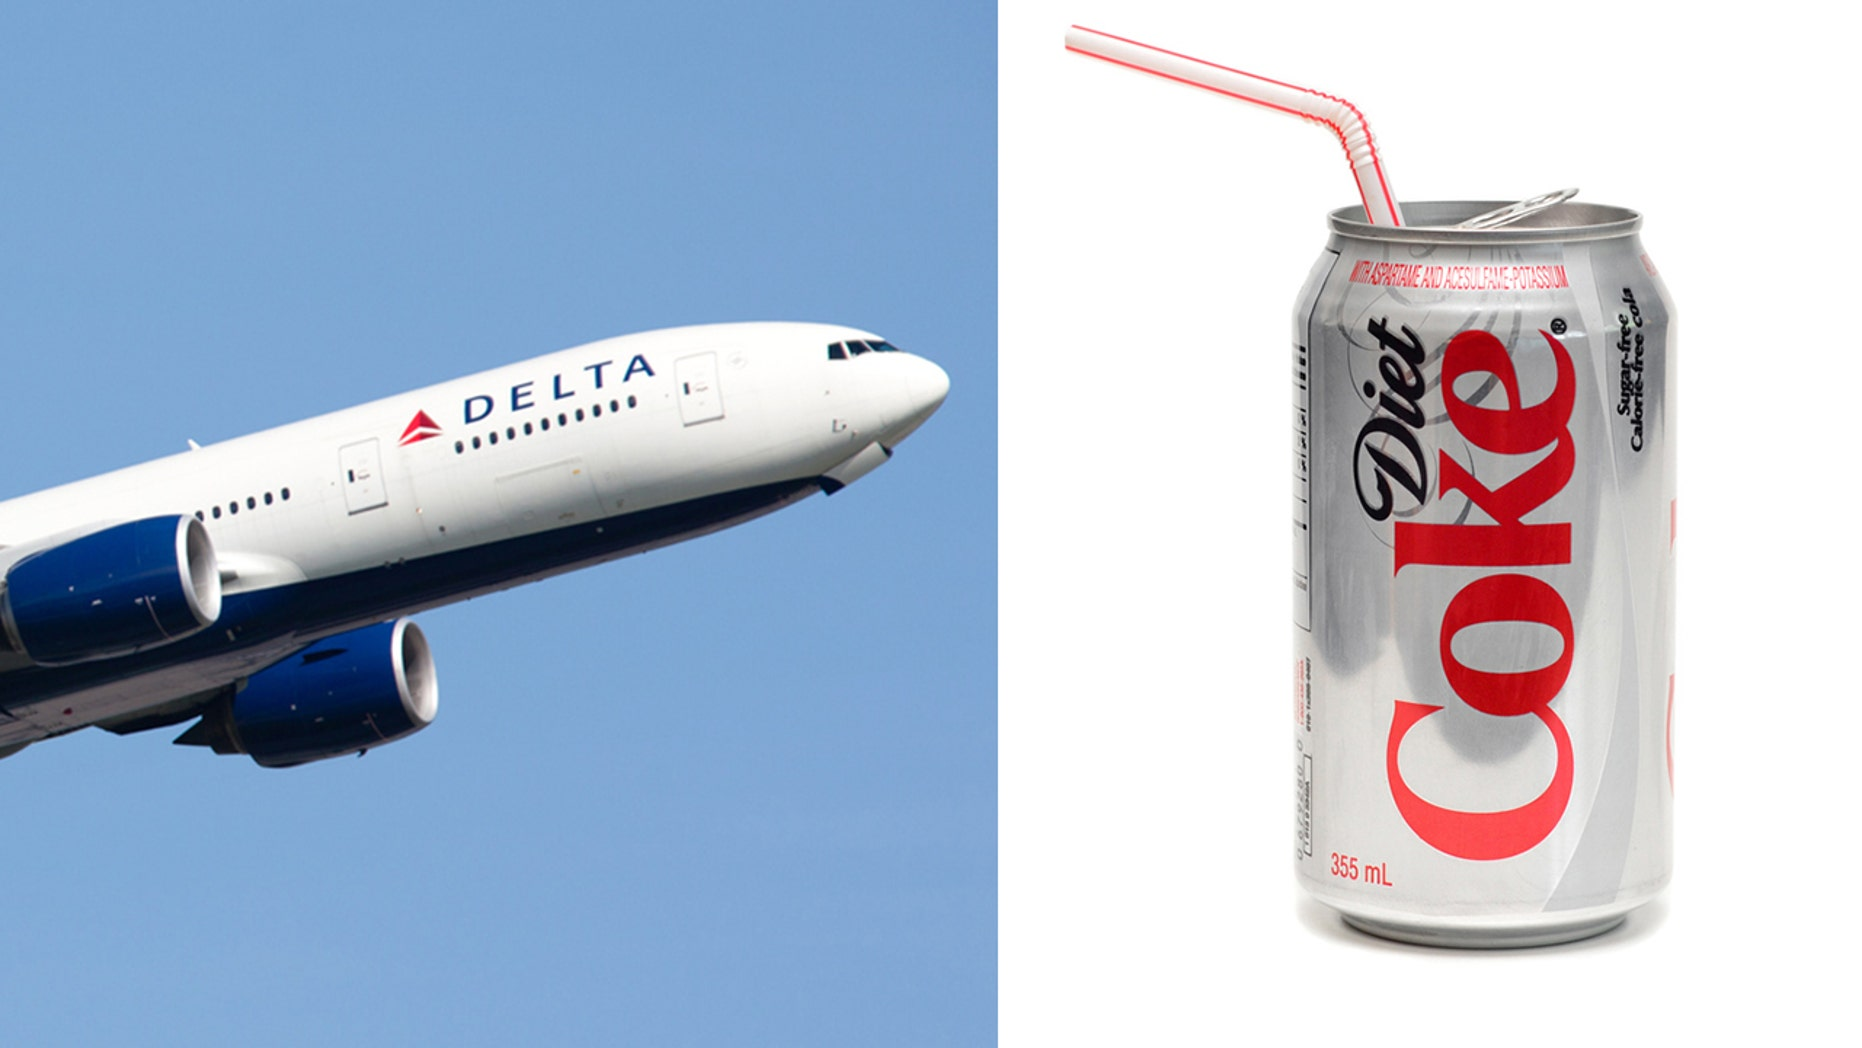 Delta and Coca-Cola have since pulled the napkins.